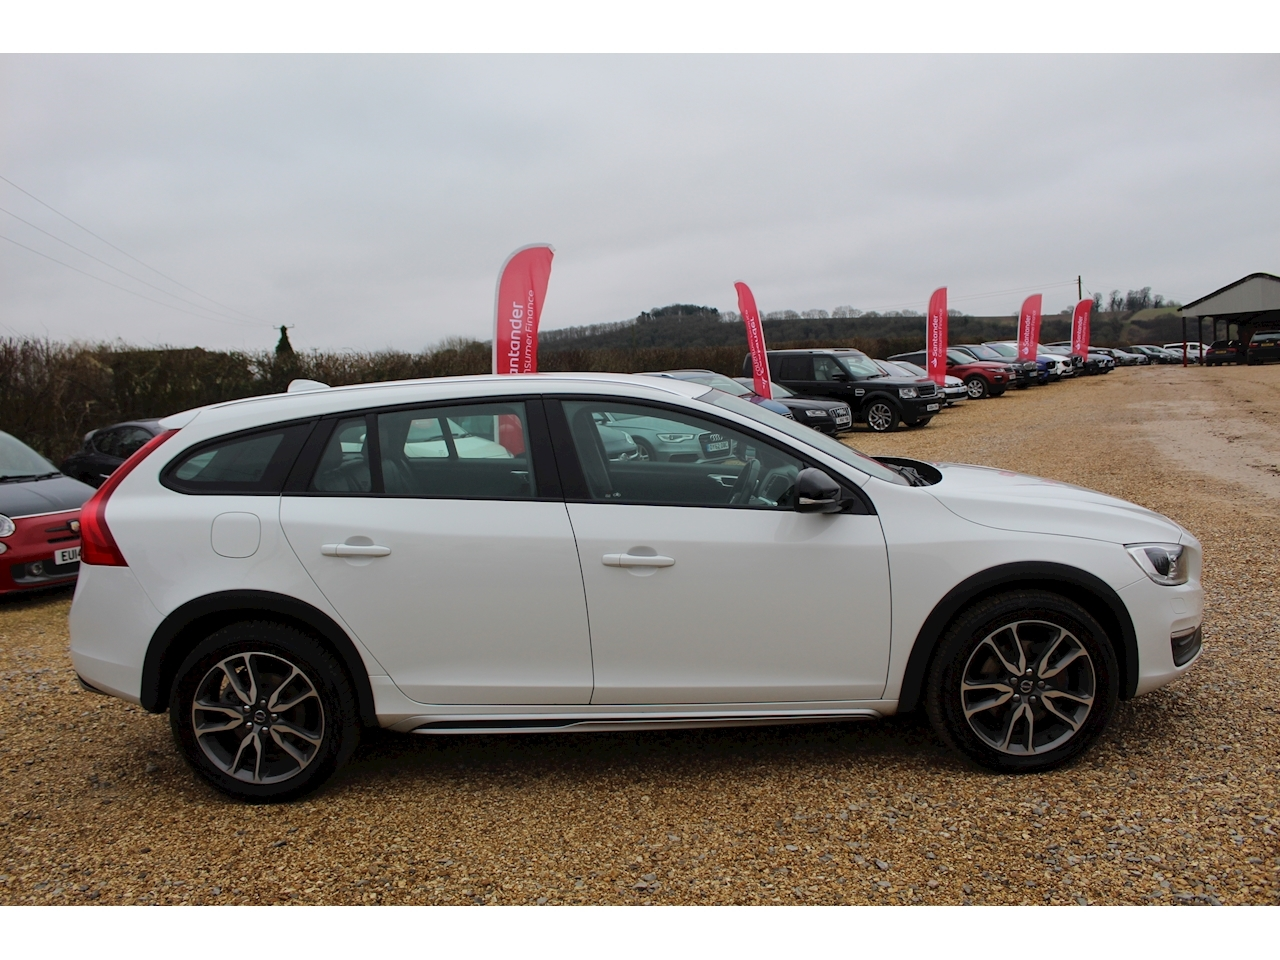 Volvo V60 D4 Cross Country Lux Nav Awd Estate 2.4 Automatic Diesel